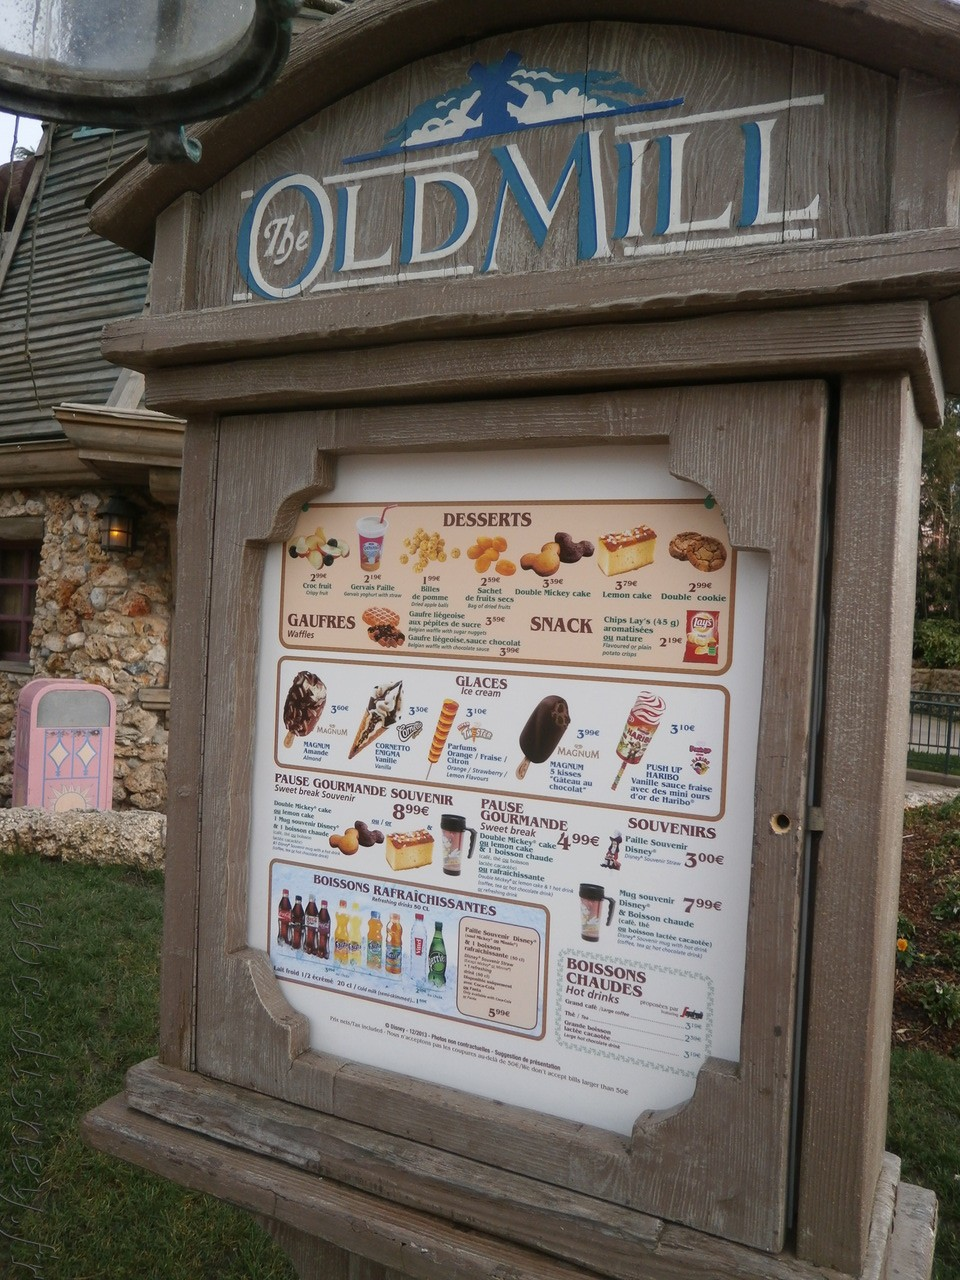 R old mill carte